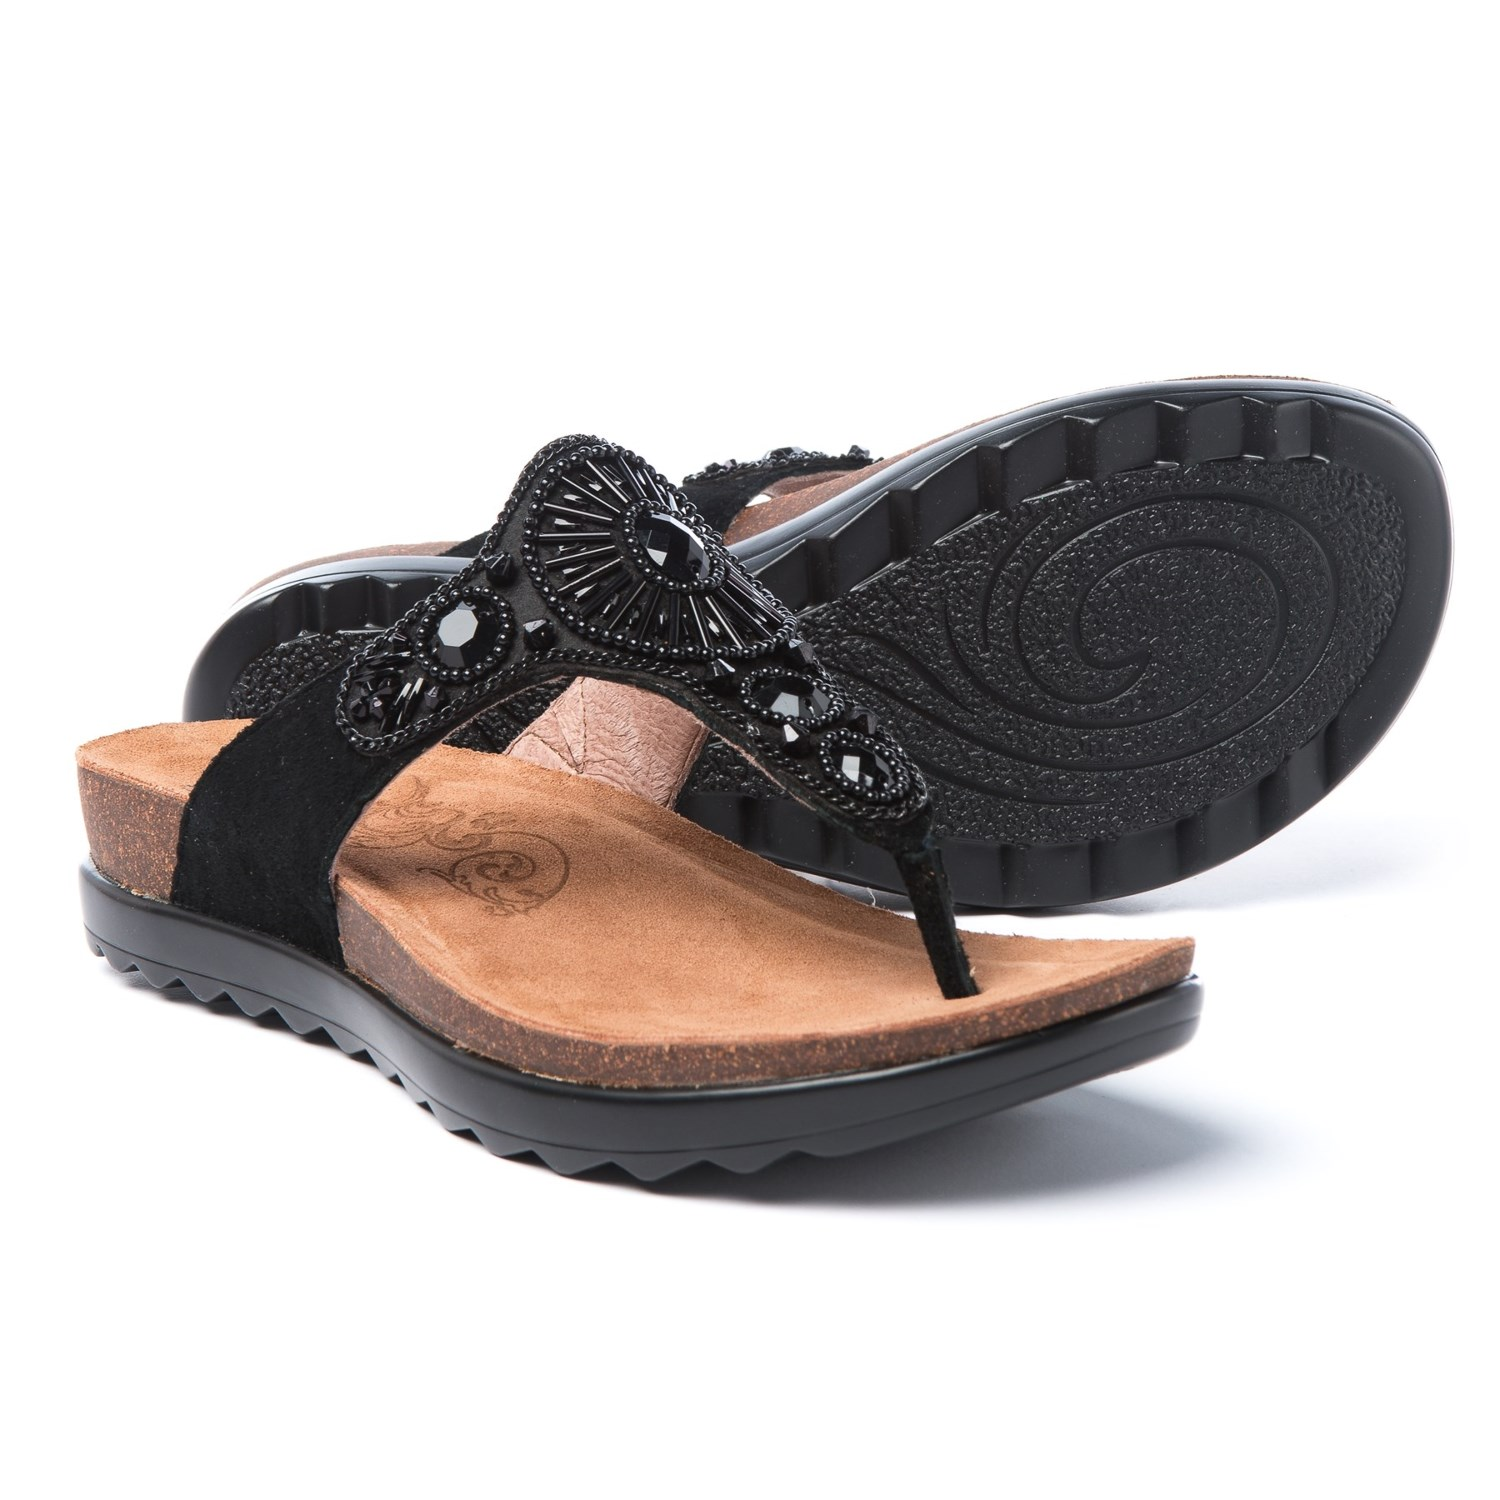 Dansko Pamela Jeweled Sandals - Leather (For Women) in Black Jewelled Suede  - Closeouts